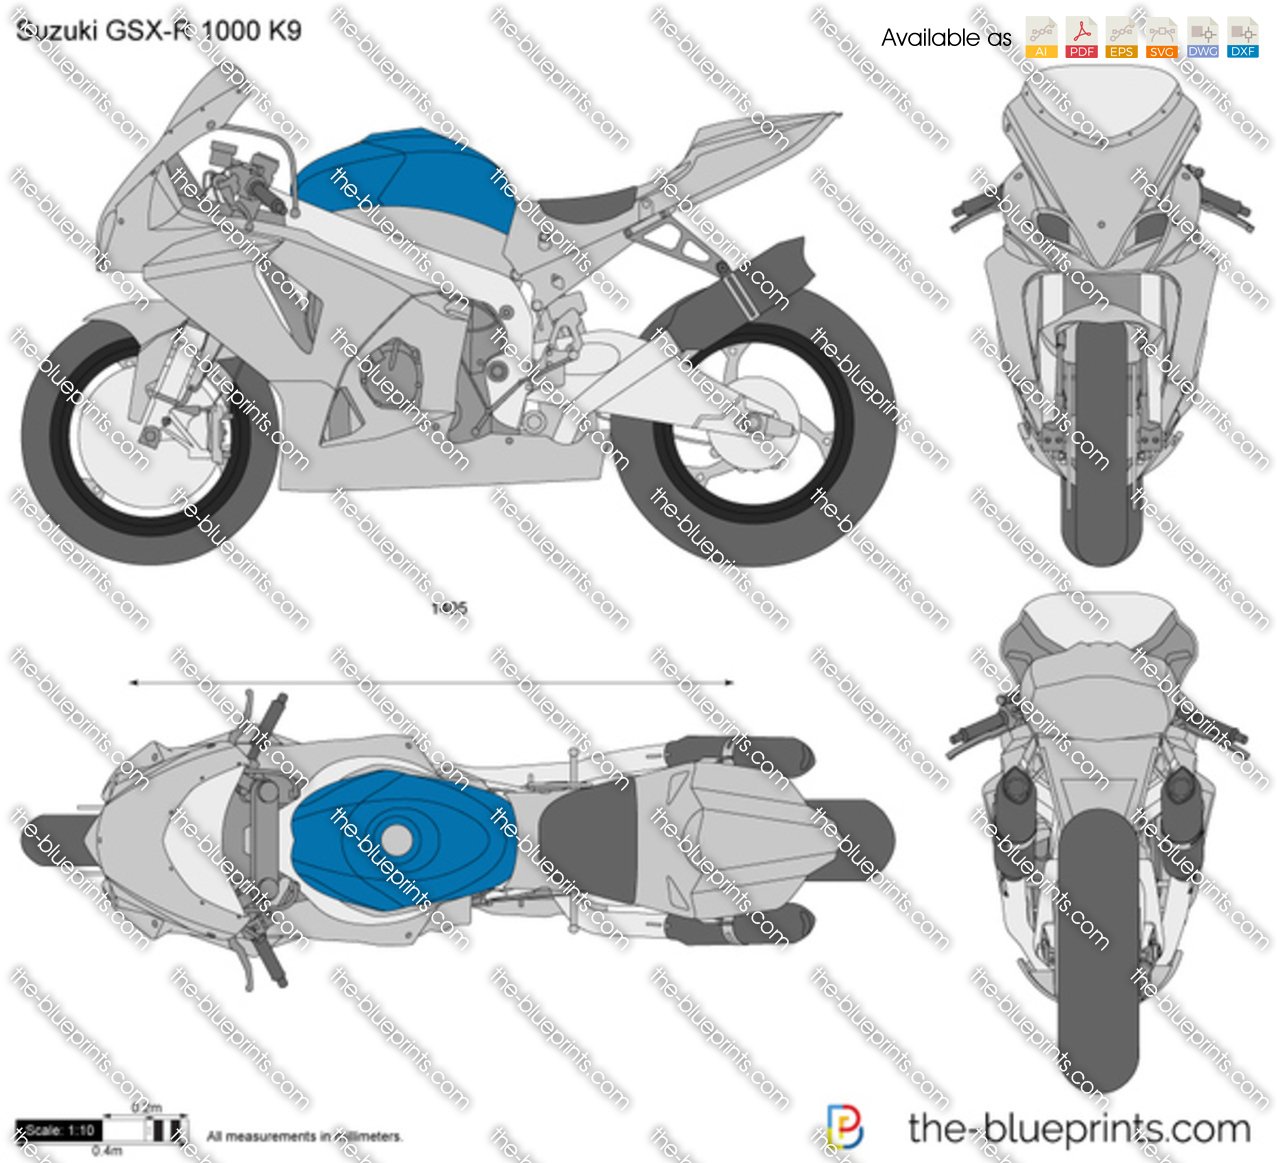 suzuki gsx r 1000 k9 wsbk vector drawing. Black Bedroom Furniture Sets. Home Design Ideas